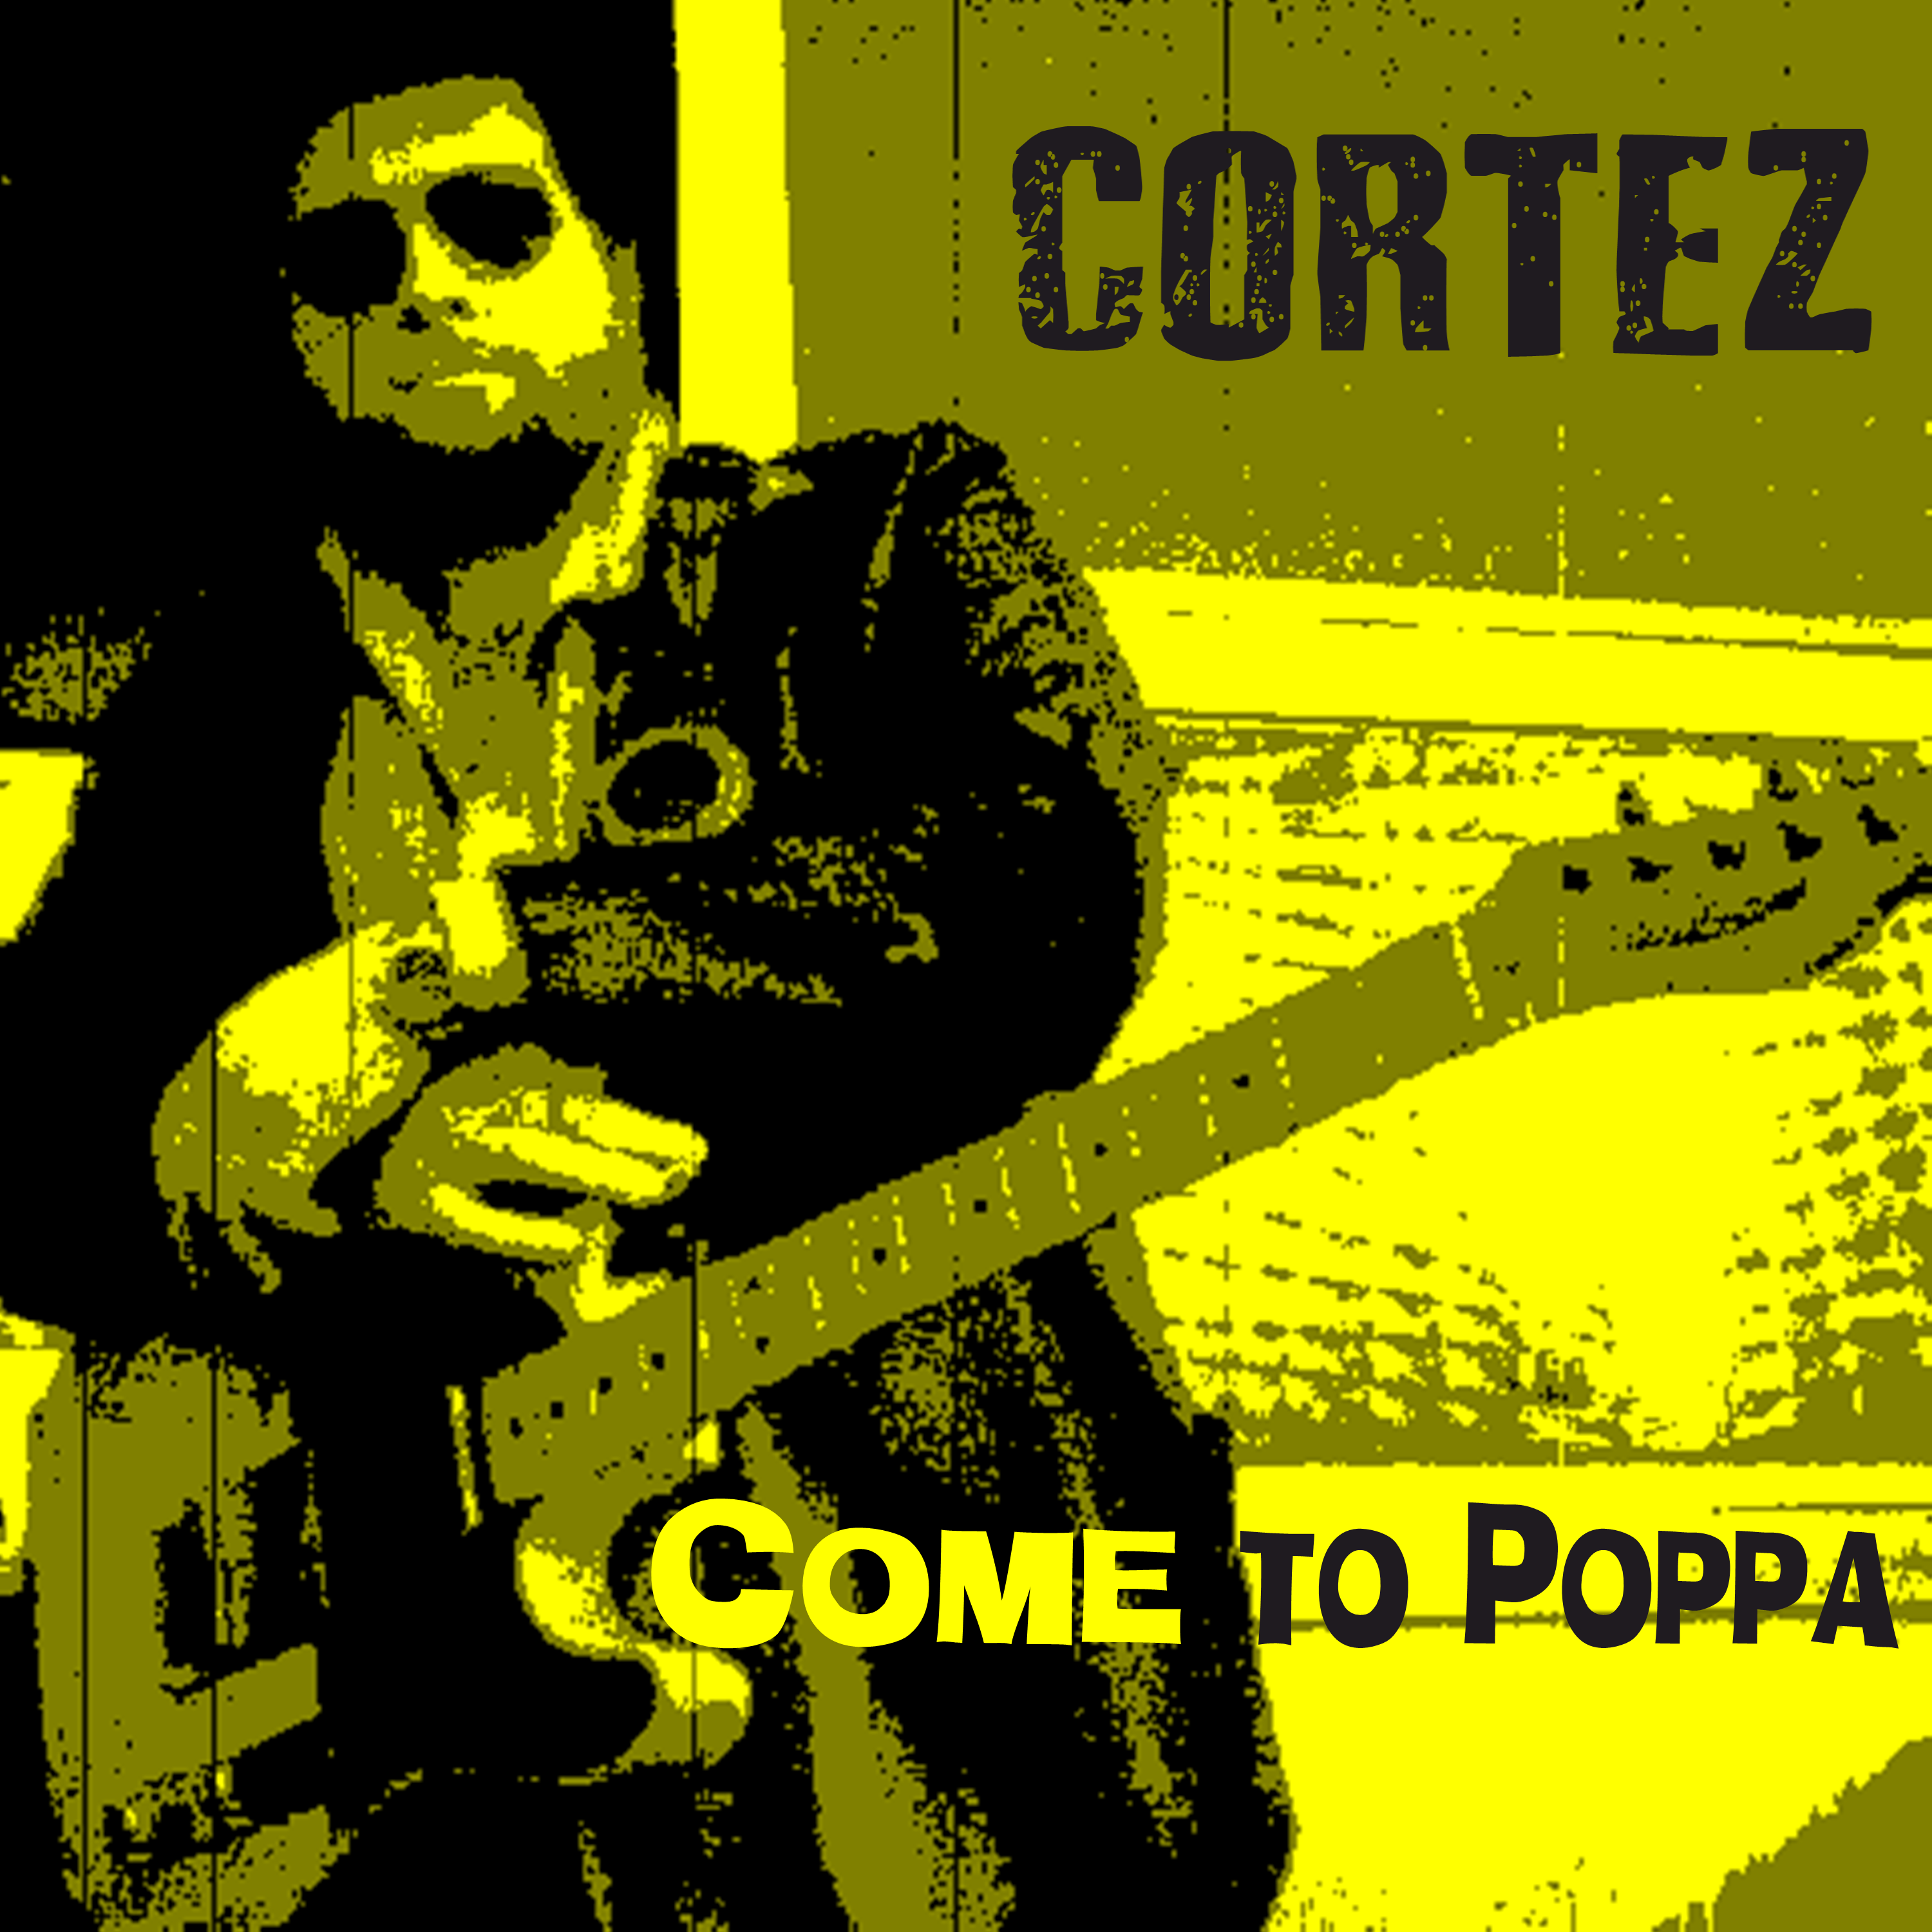 Come to Poppa. New Album by Cortez Out October 2, 2020.